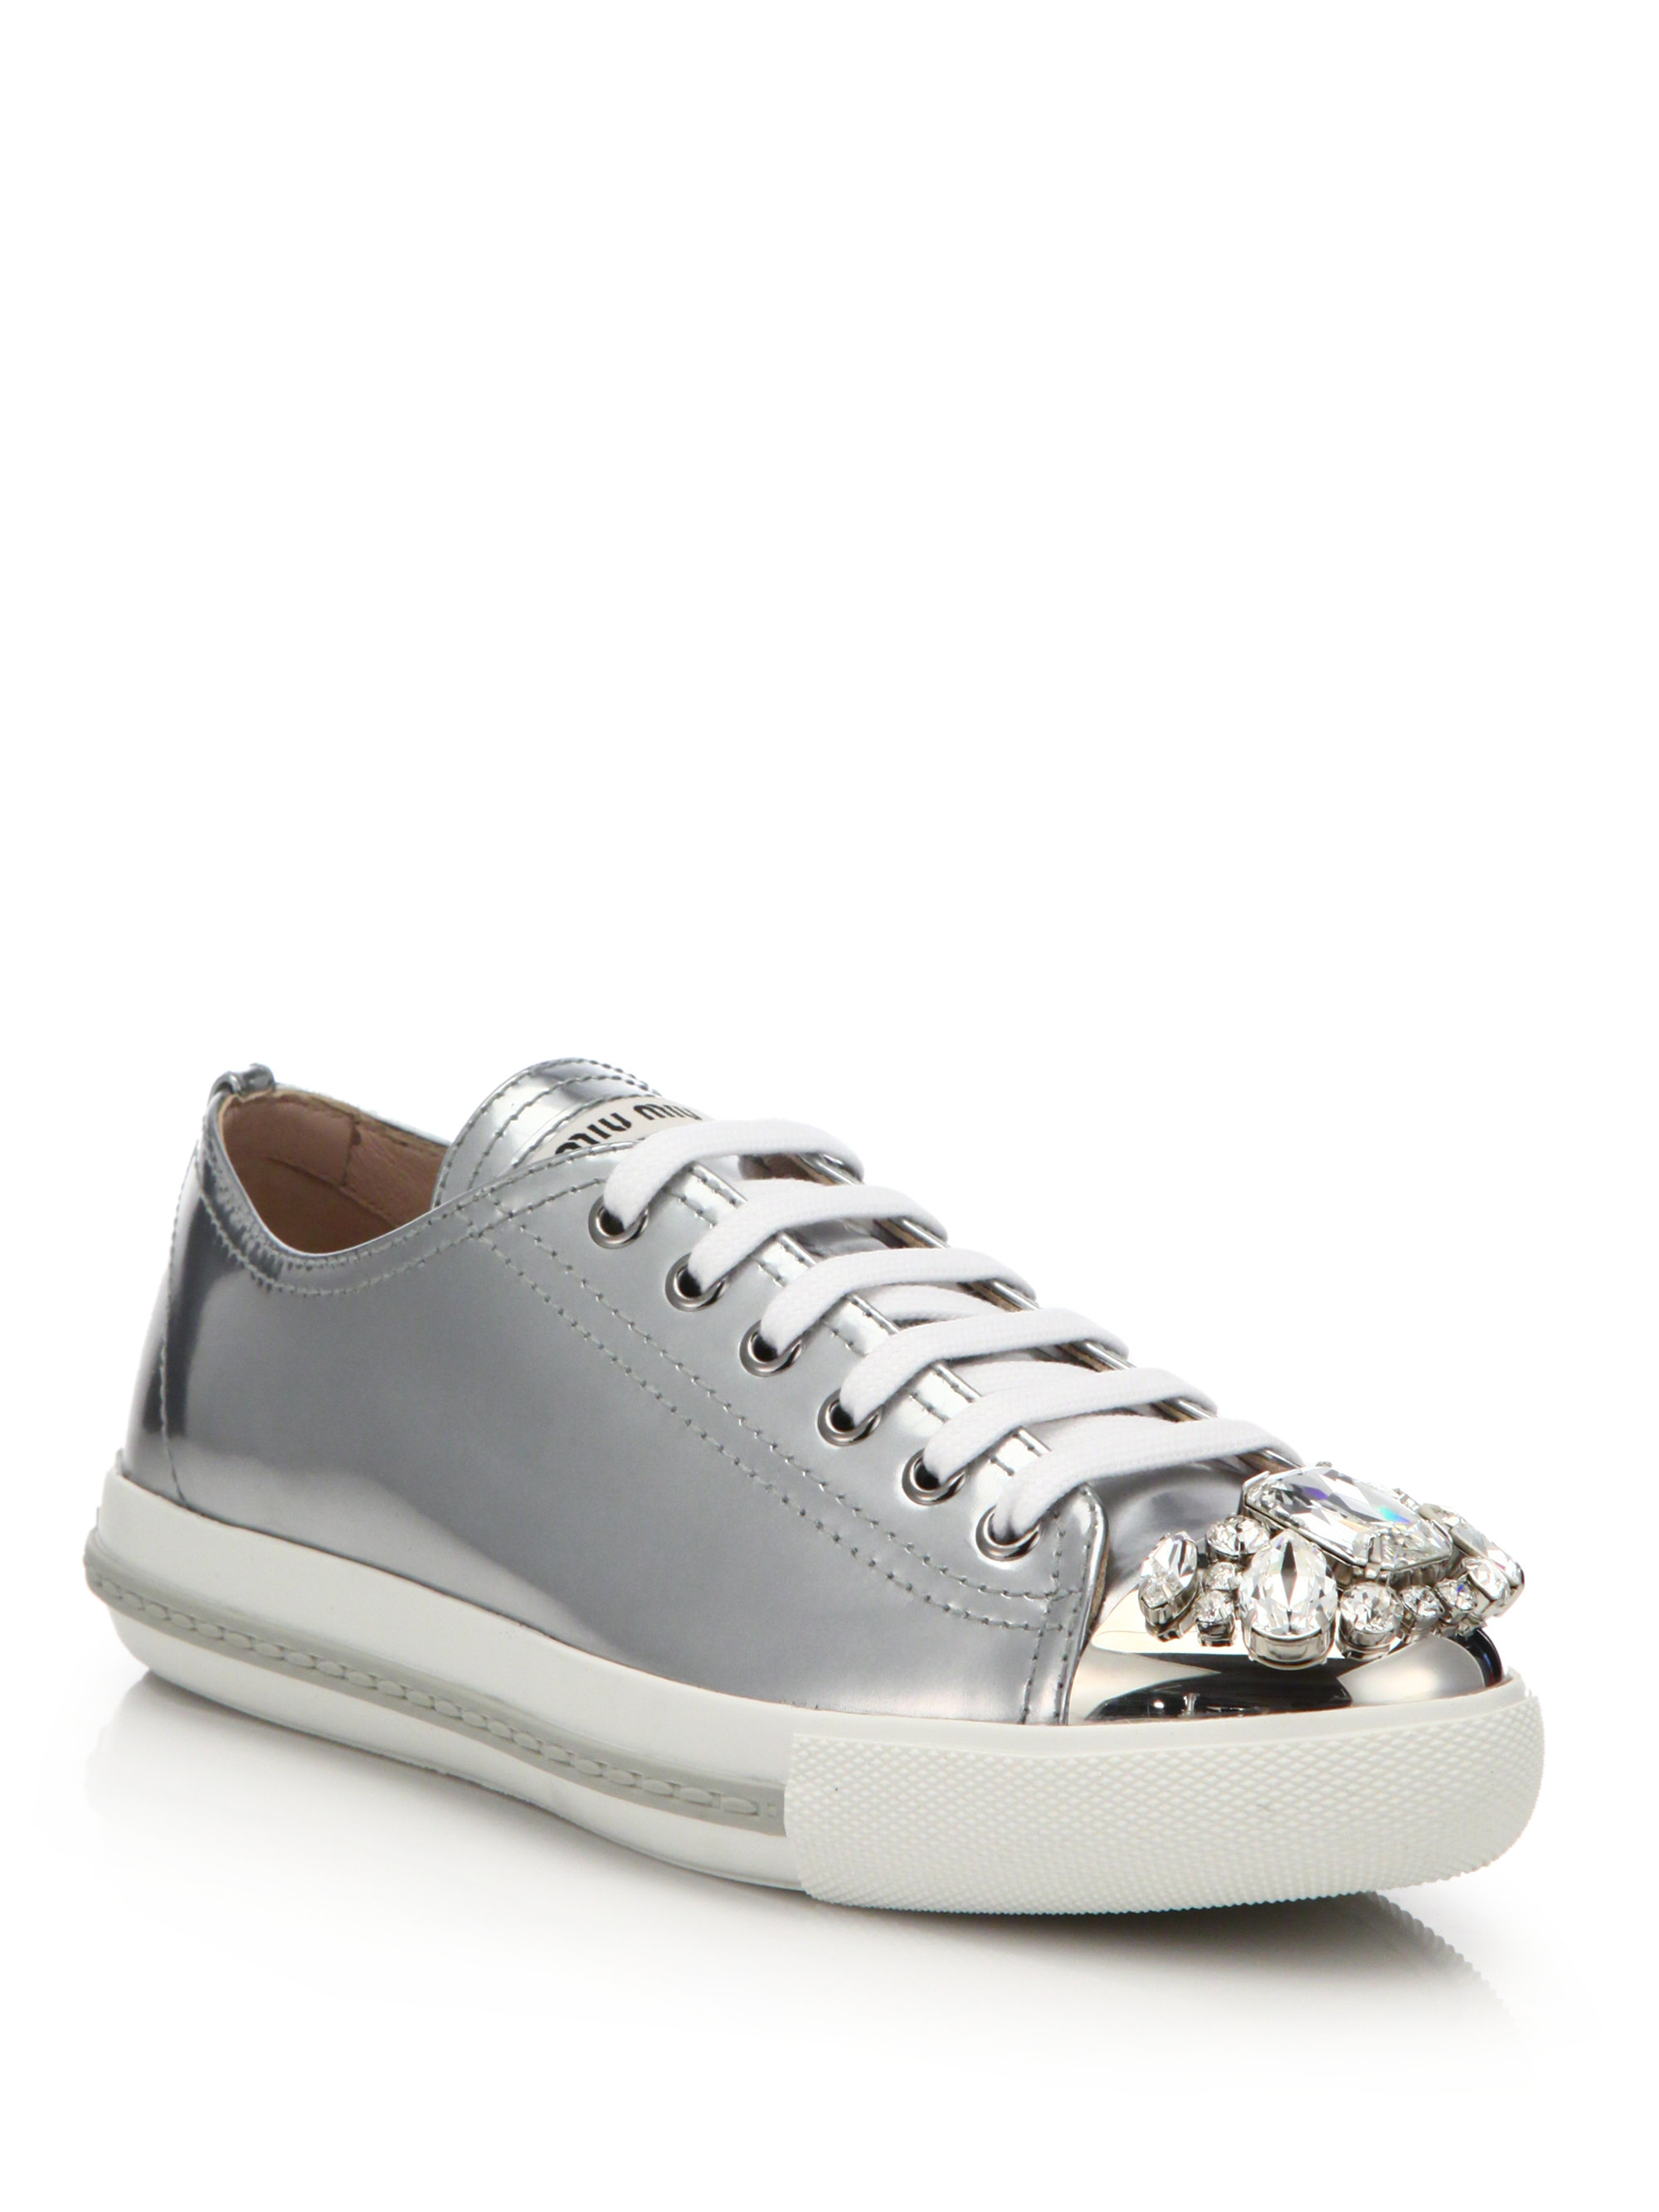 411493b8418462 Lyst - Miu Miu Metallic Jewel Cap-toe Sneakers in Metallic